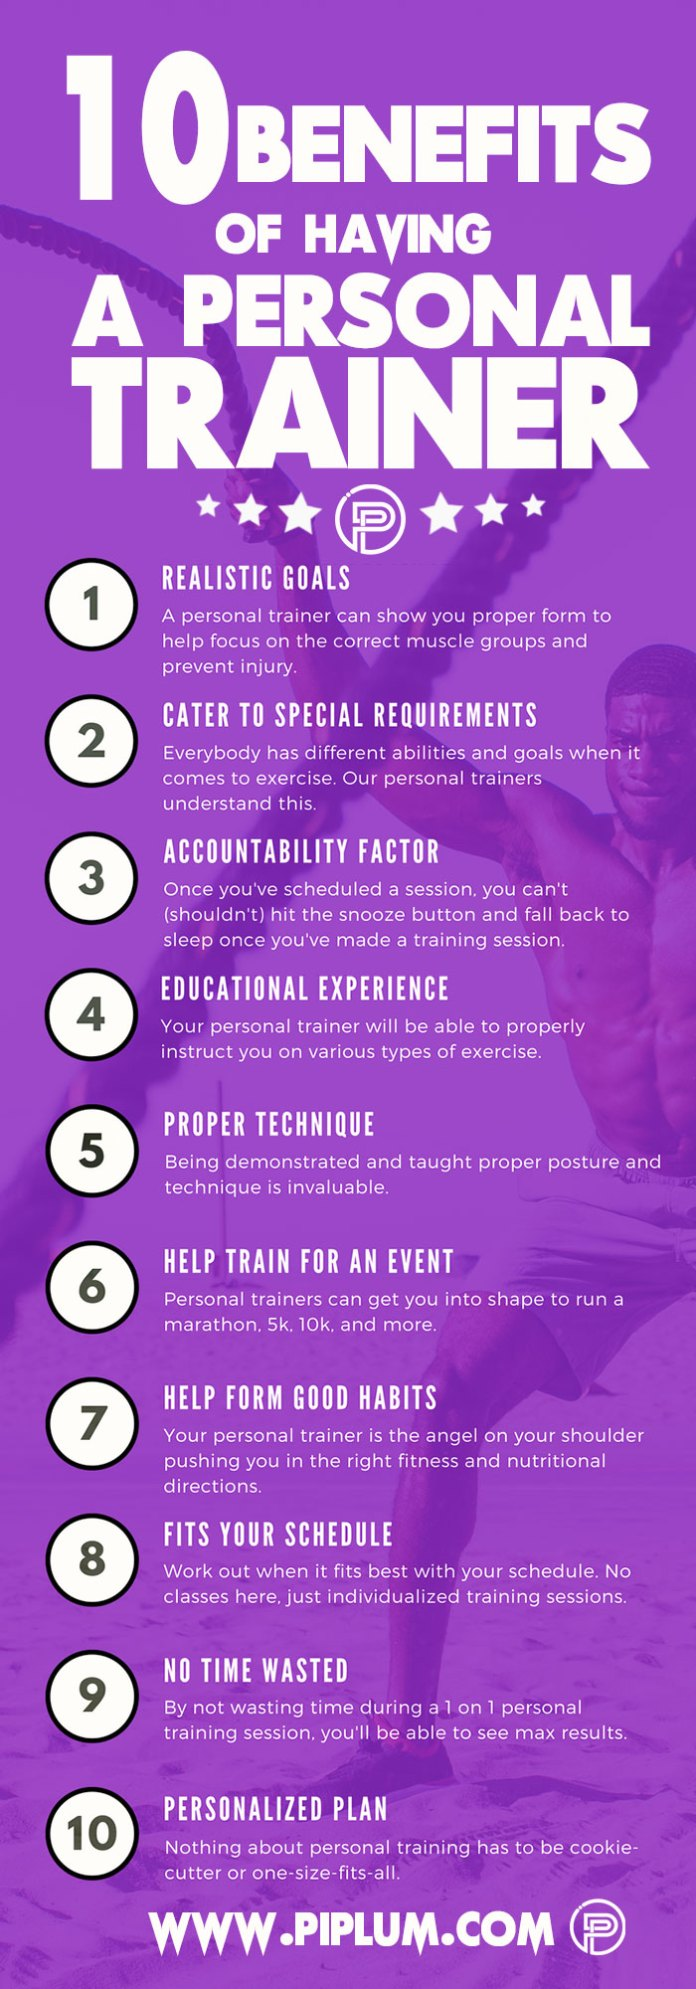 10-benefits-of-having-a-personal-trainer.-Poster.